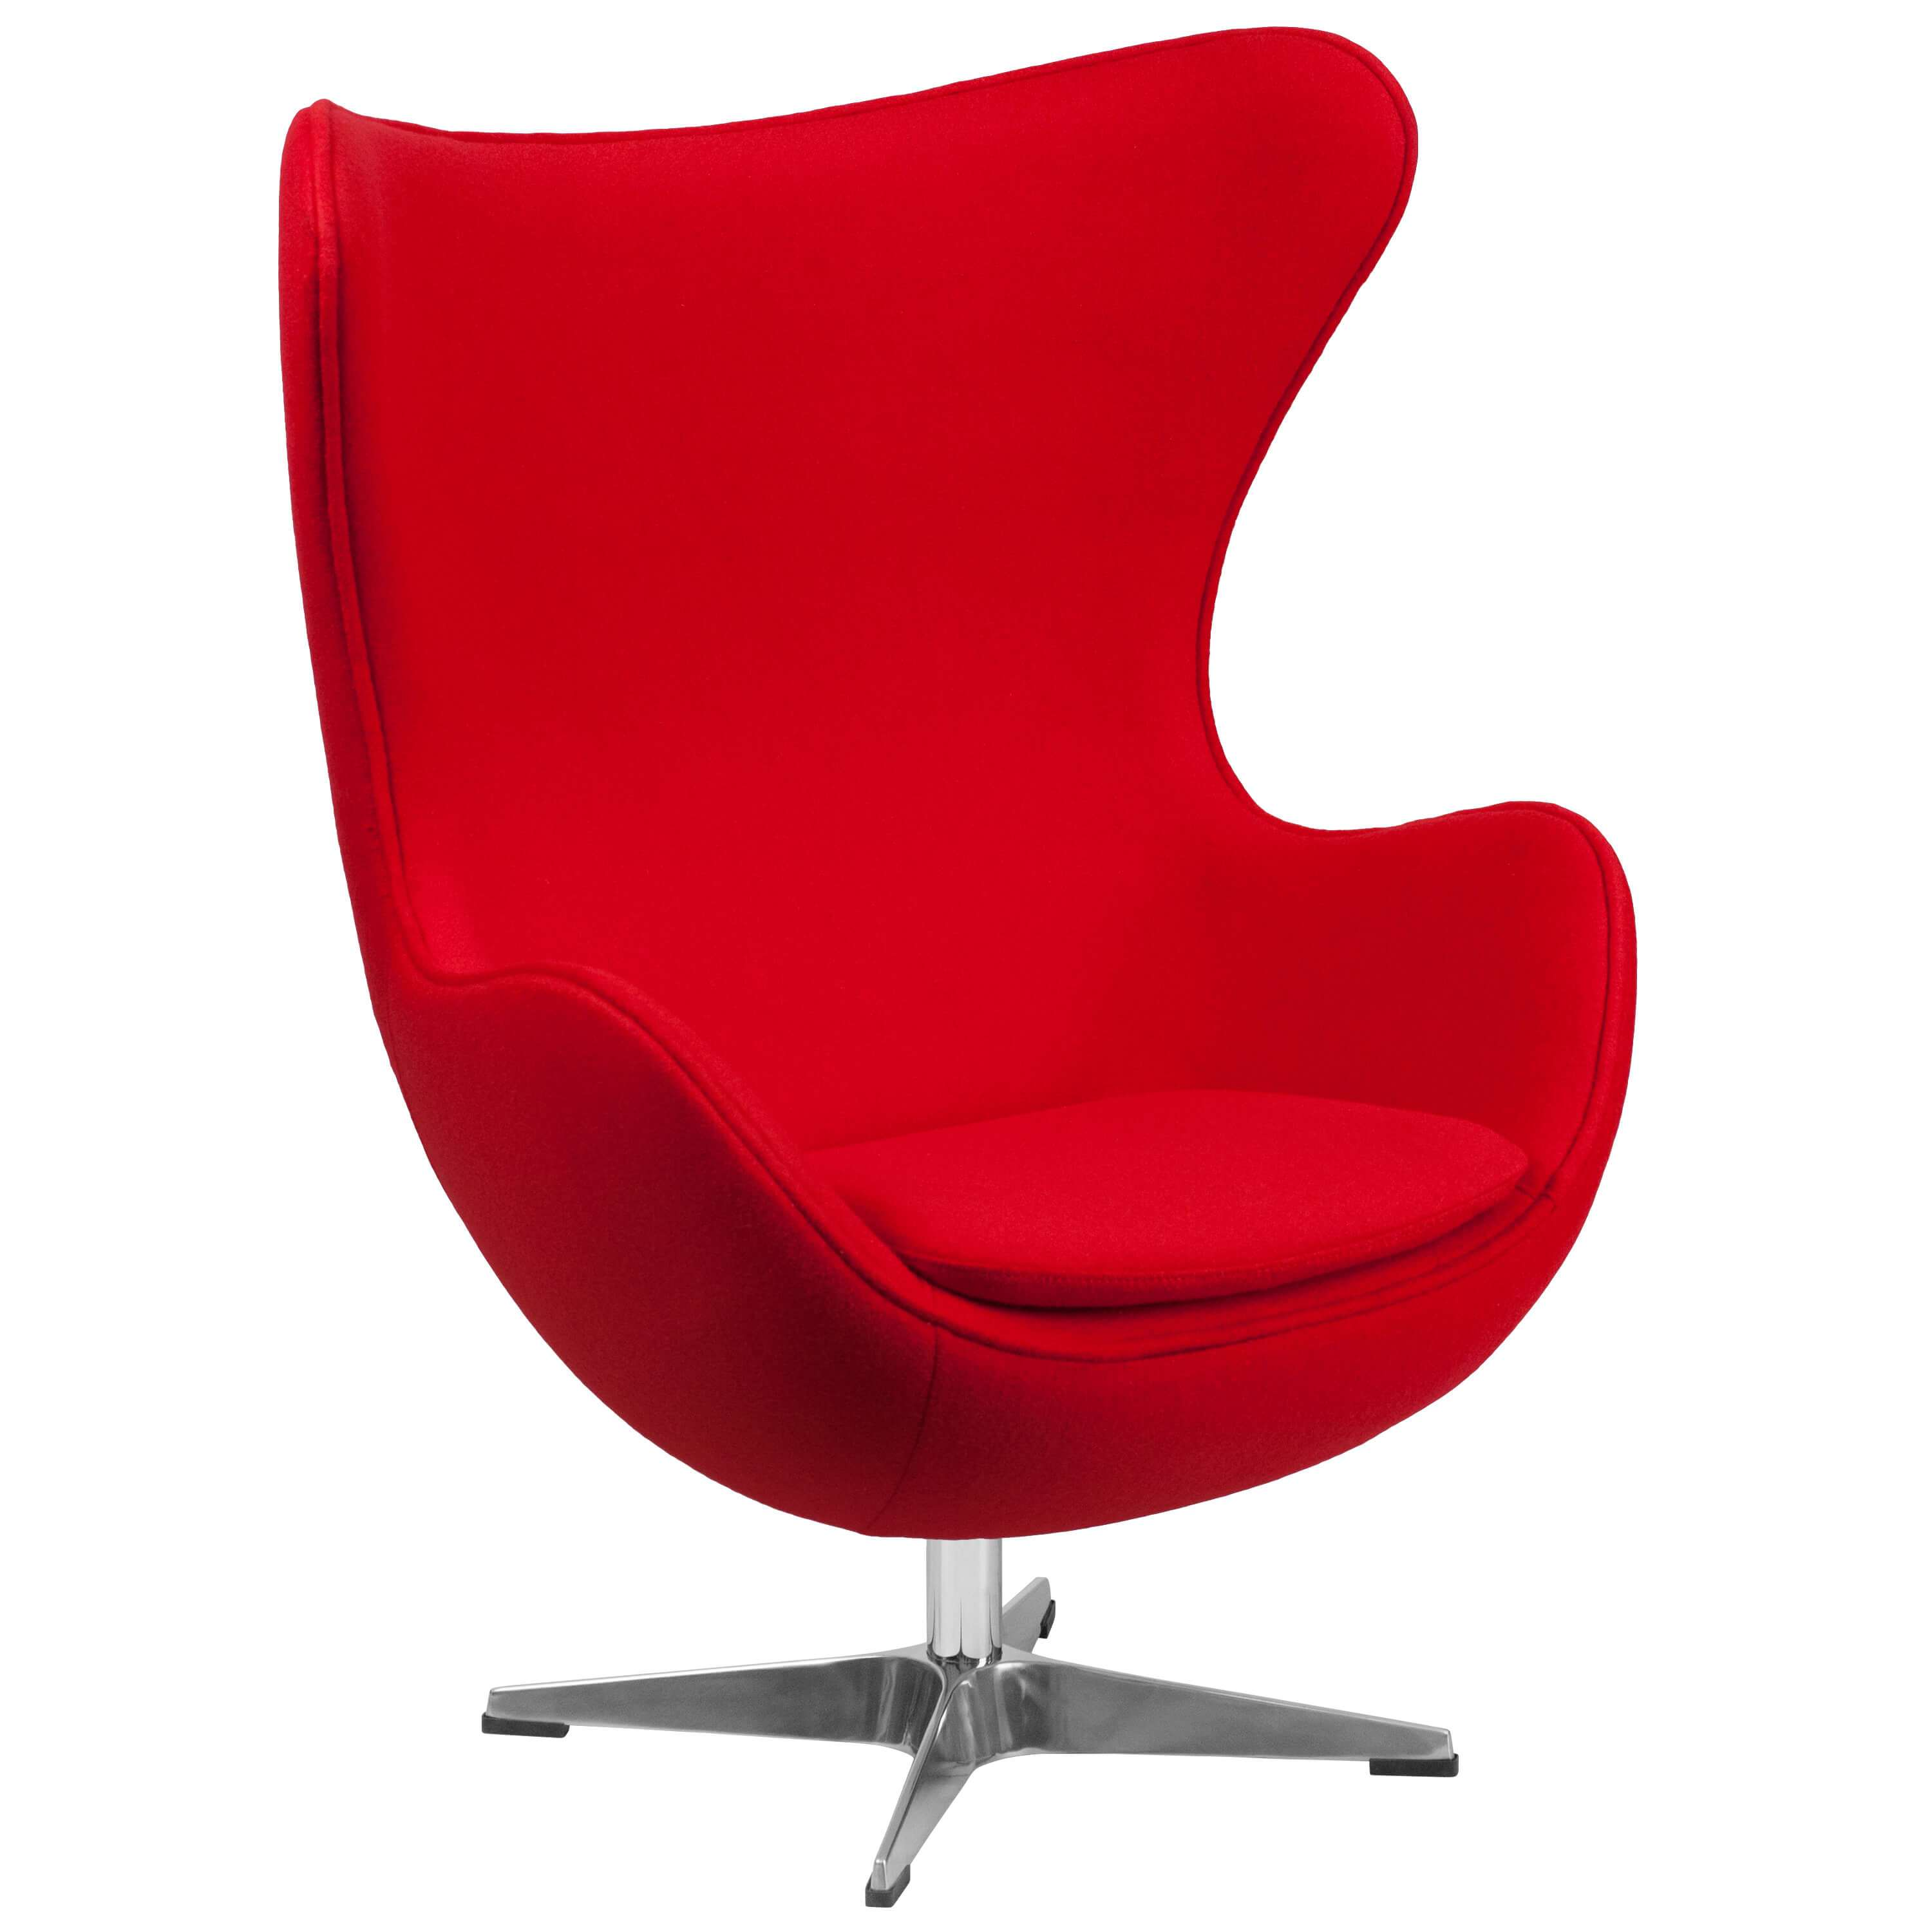 Office lounge chairs CUB ZB 14 GG ALF